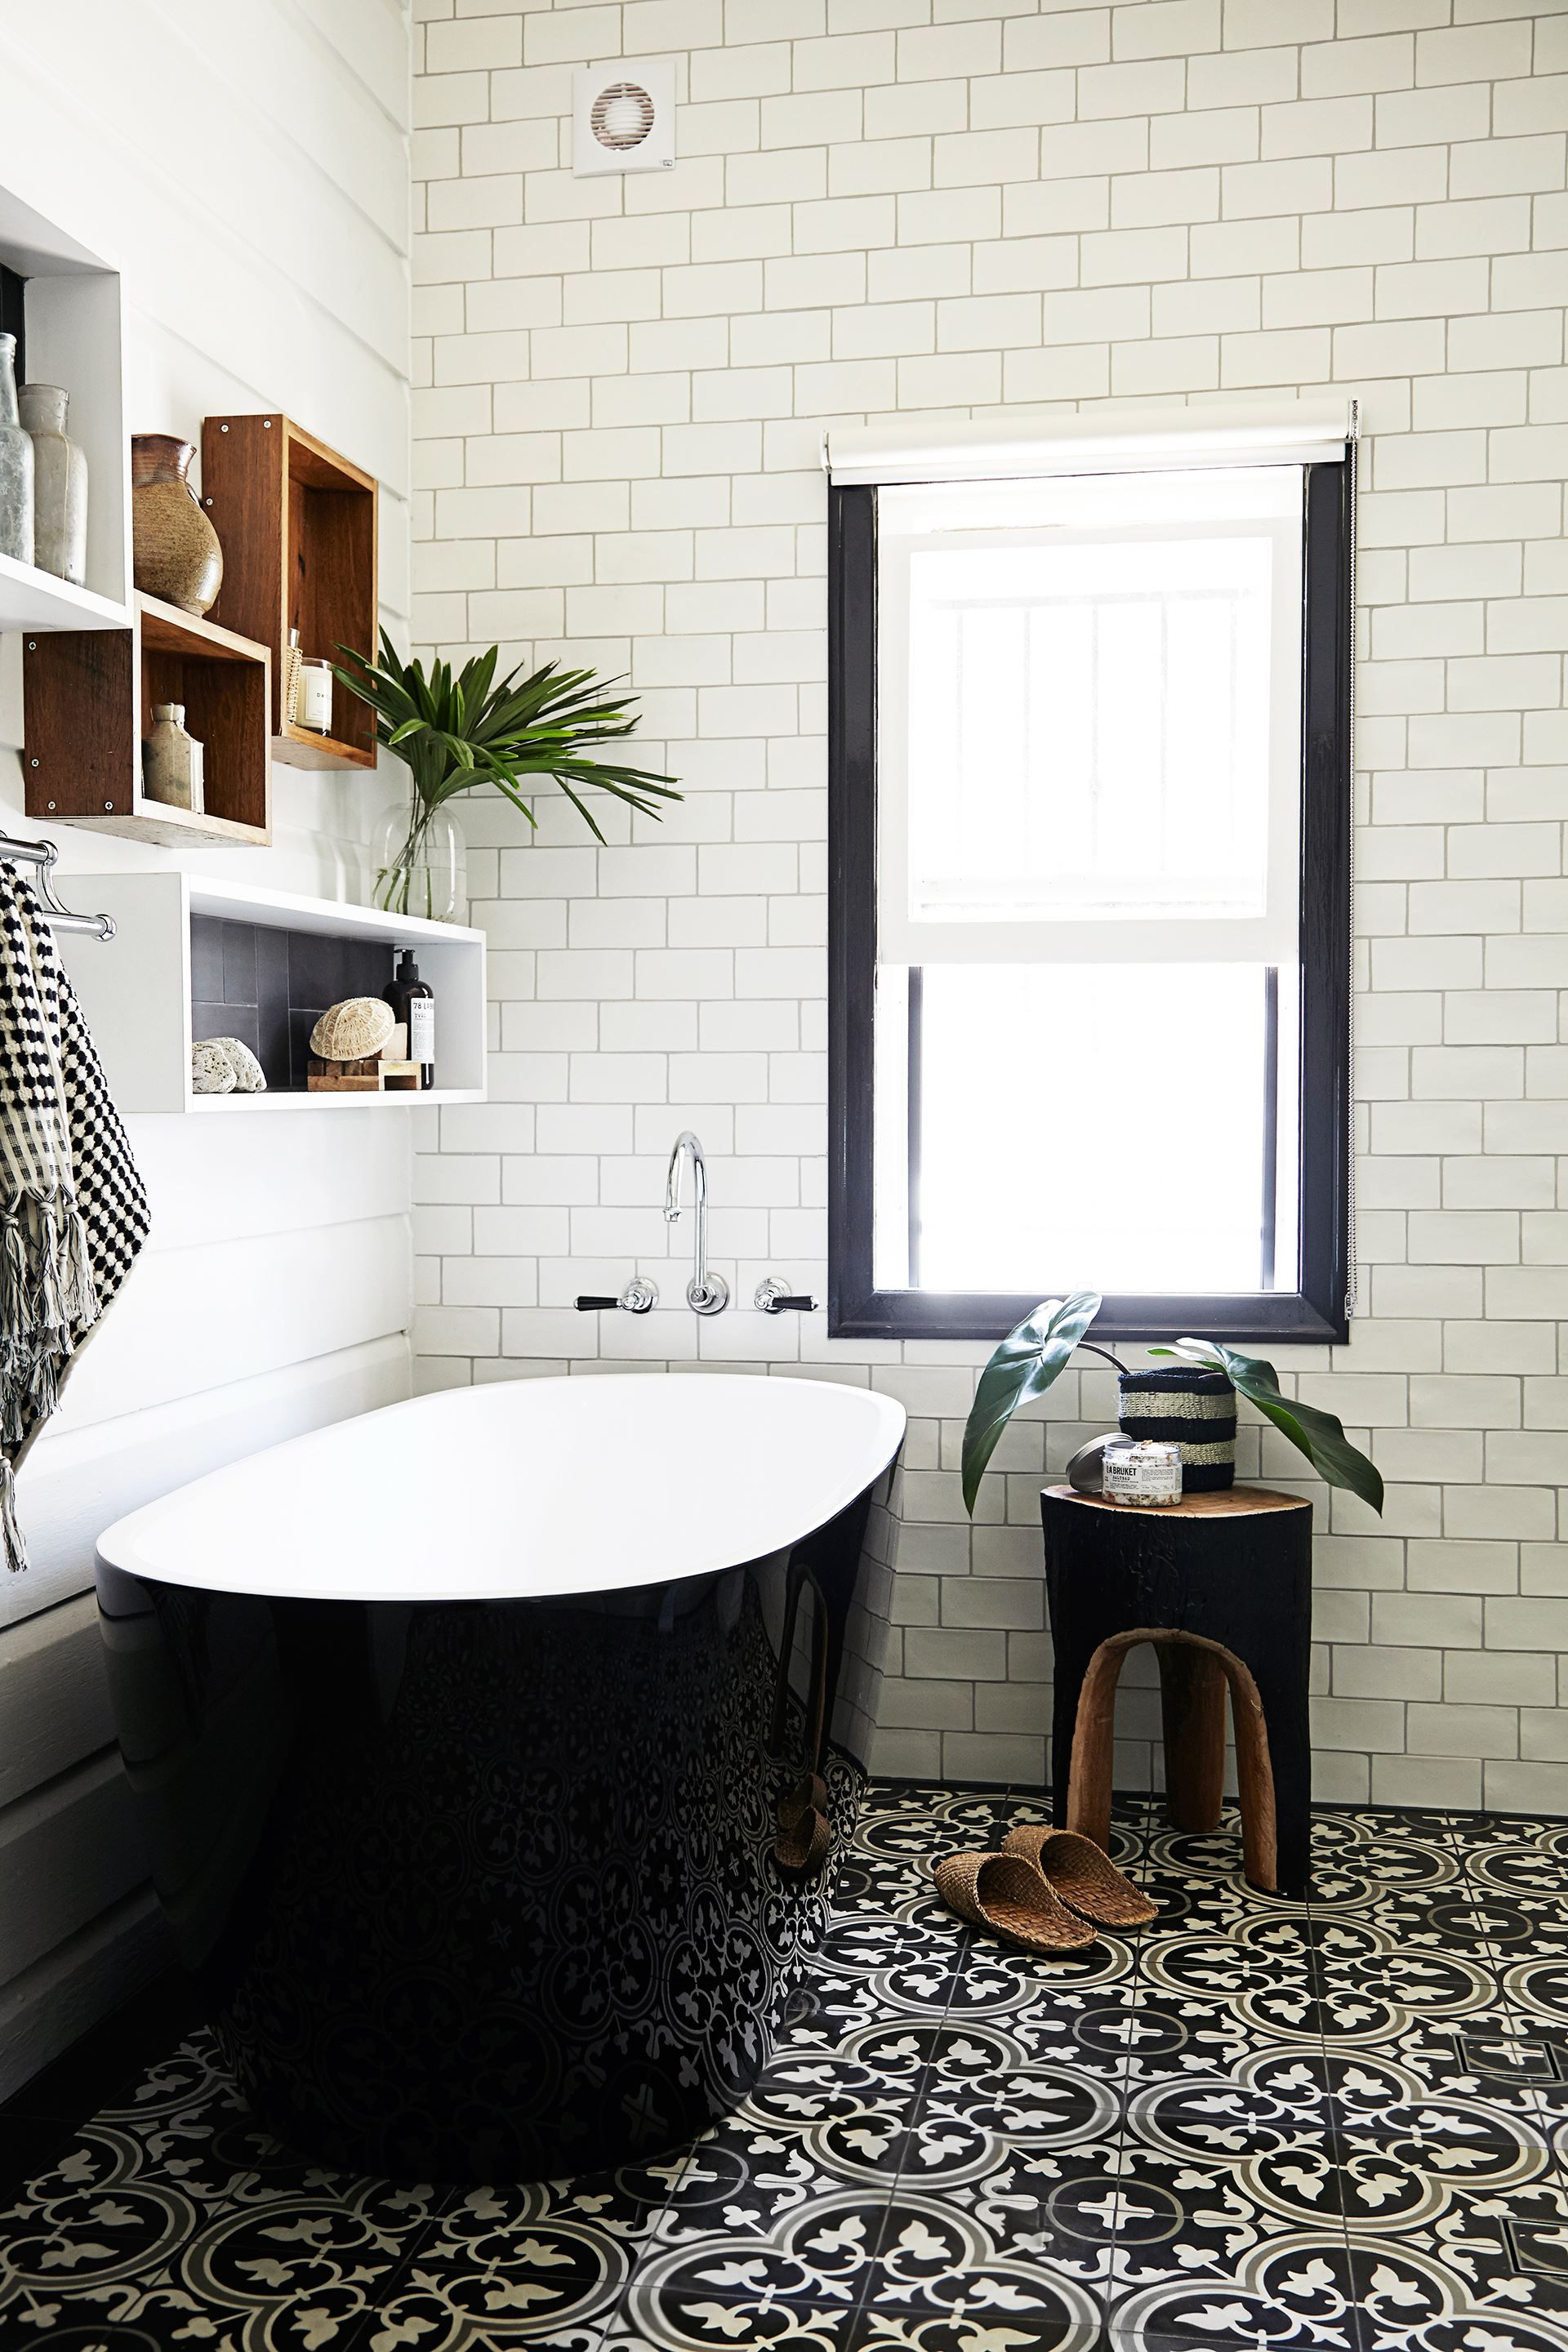 Brisbane Cottage Eco-Bathroom Renovation | Target, Bath and House